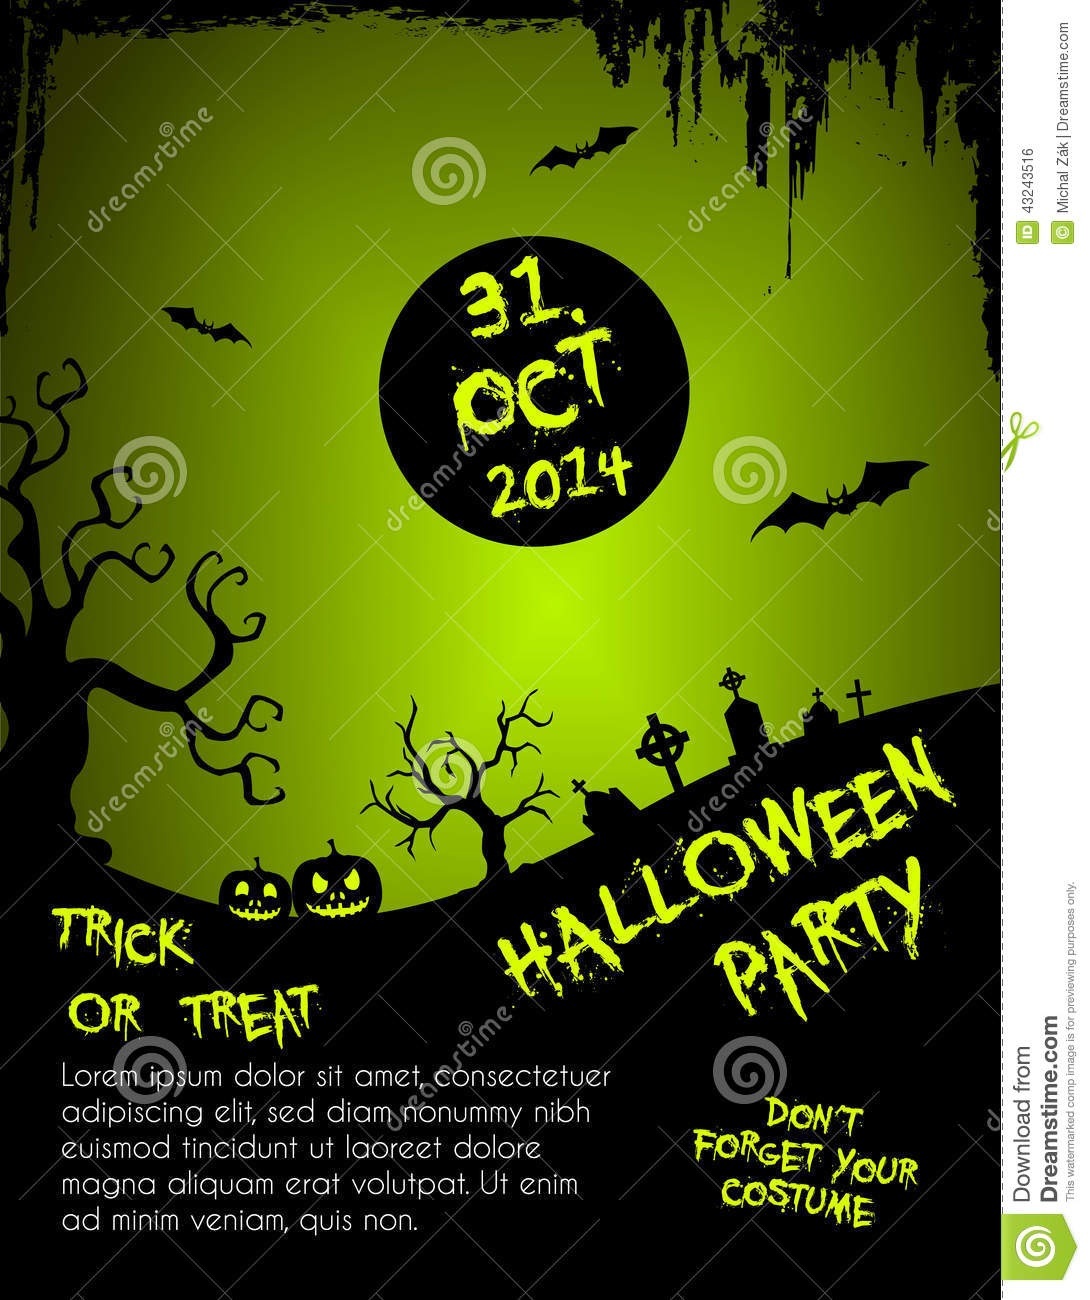 Halloween Party Flyer Template - Green And Black Stock Vector - Free Printable Halloween Flyer Templates